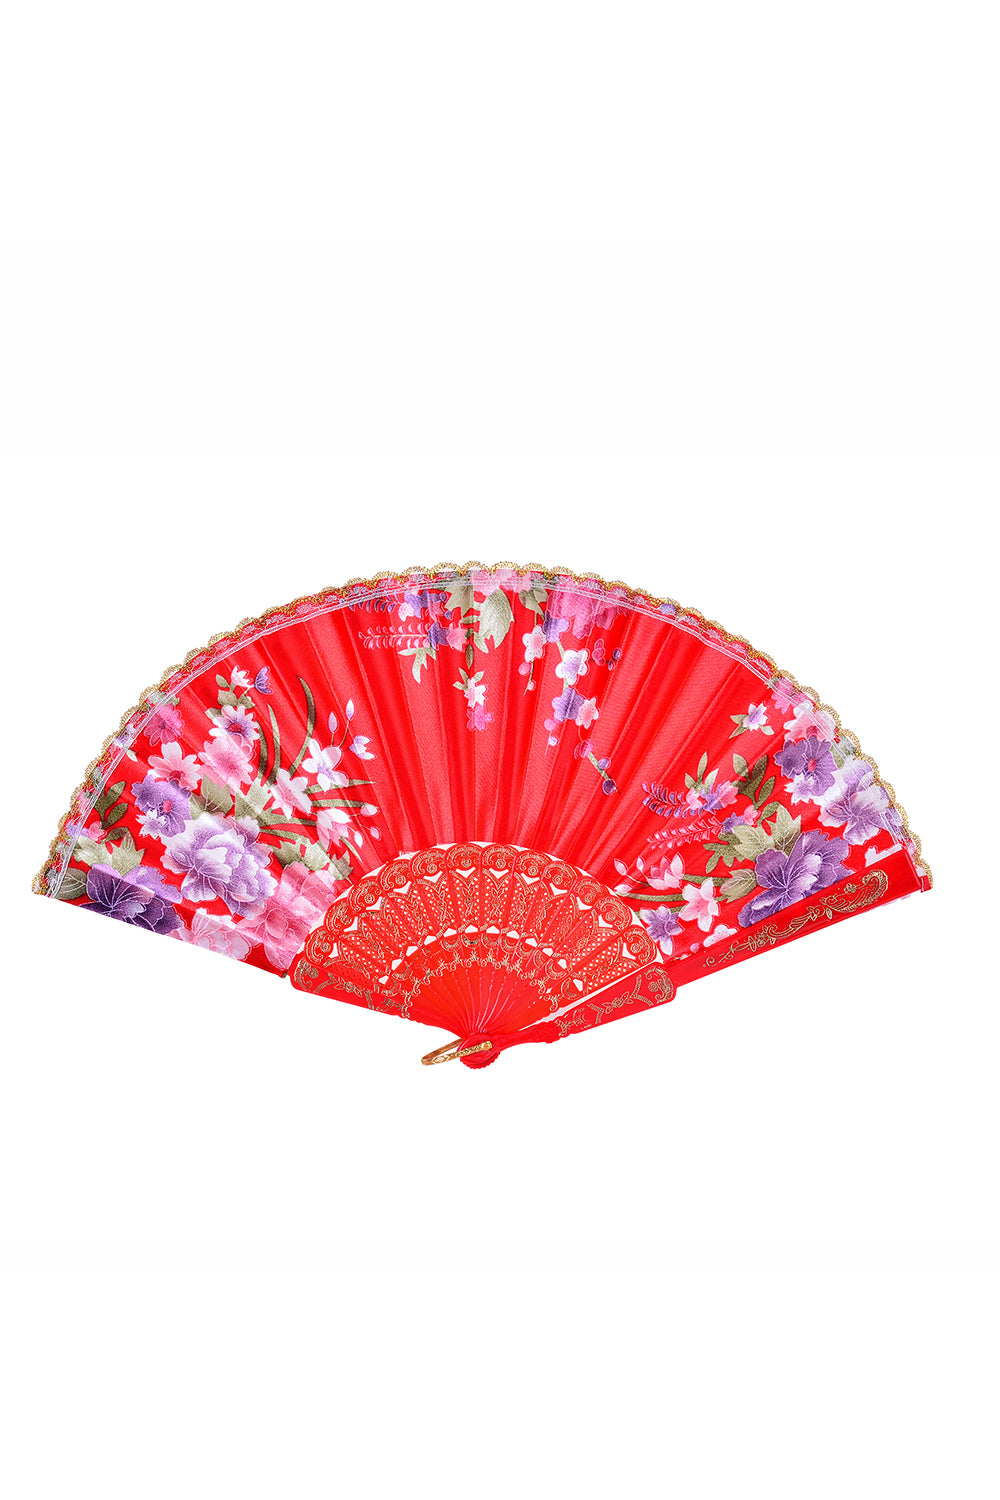 Festival Silk Fan - Red Blossoms